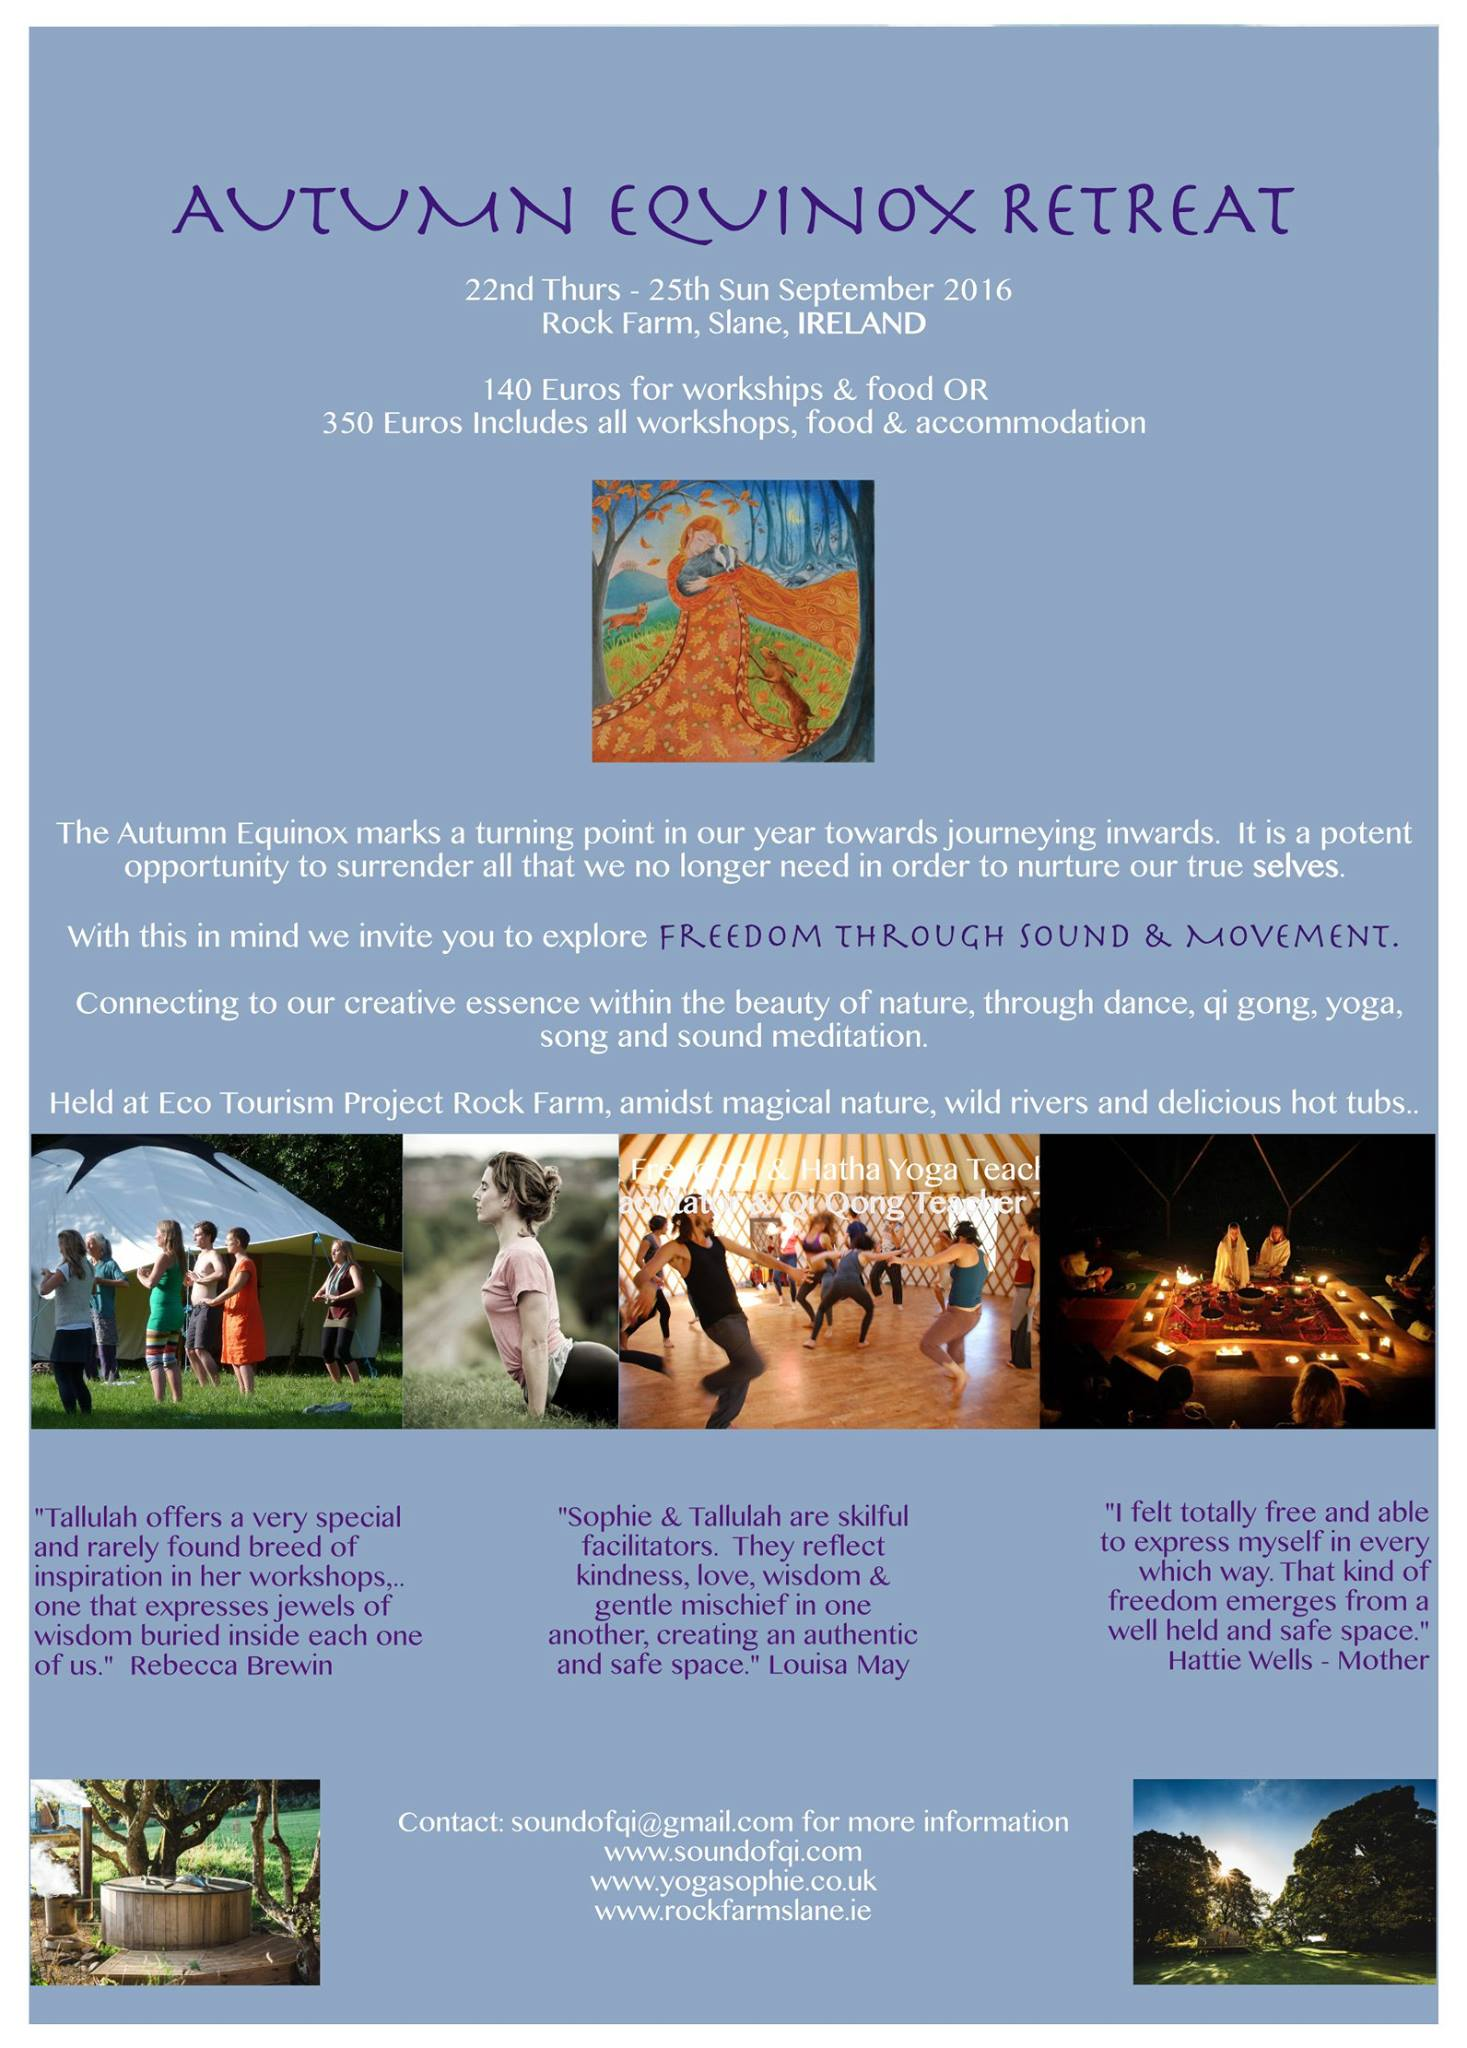 Autumn Equinox Yoga Retreat